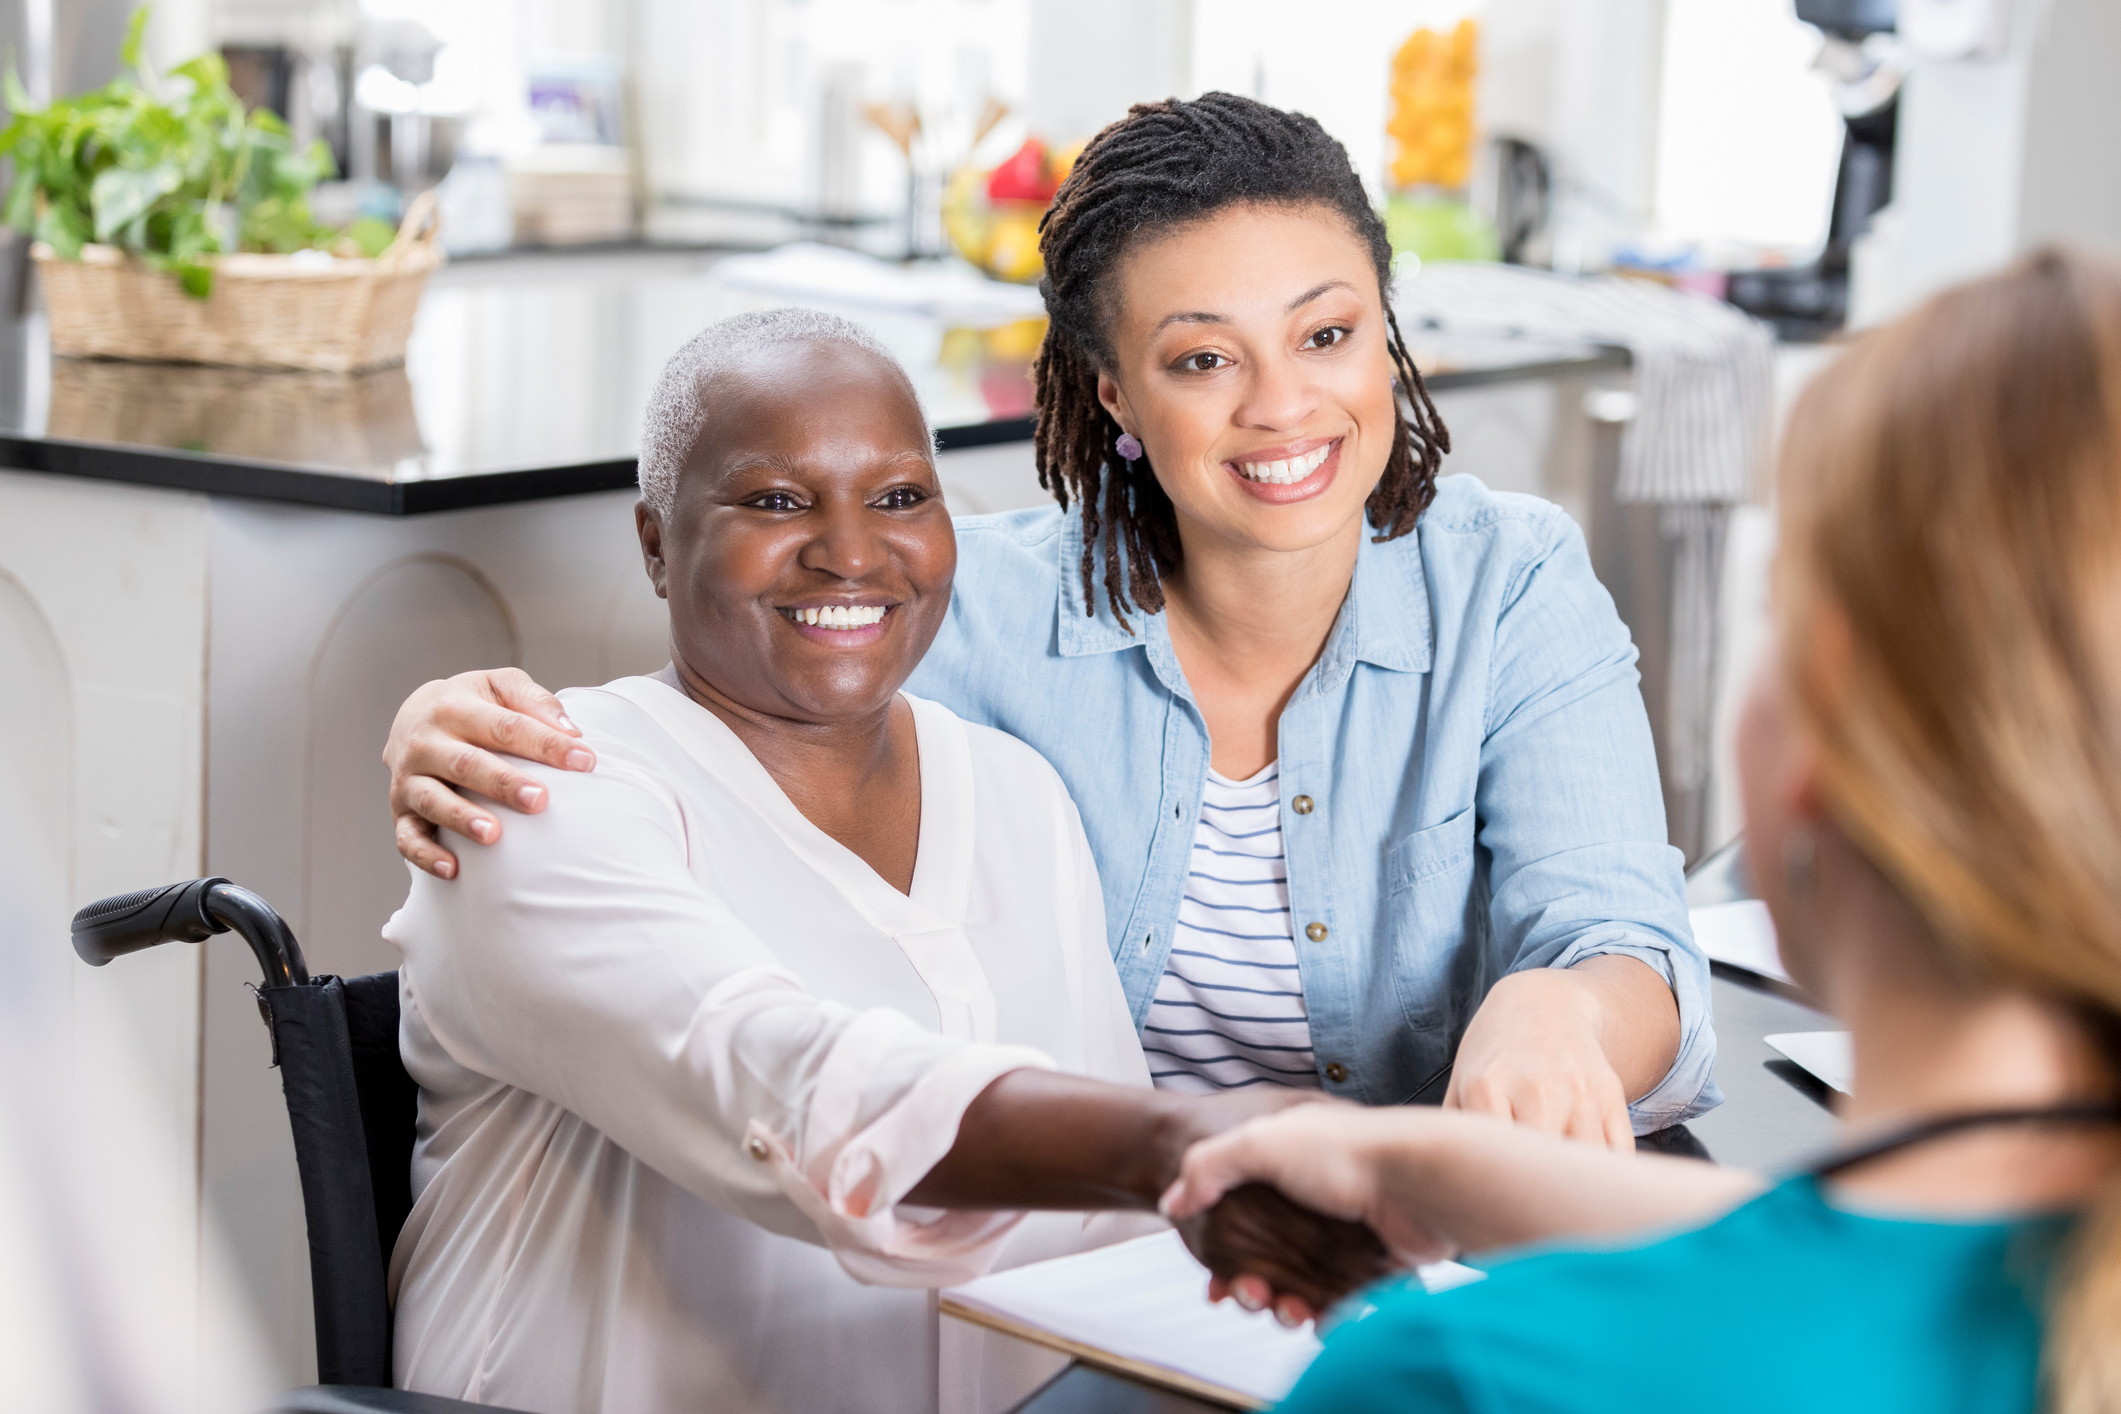 A woman talks with her mom's home healthcare nurse. The daughter has her arm around her mom. The mother is shaking the nurse's hand.